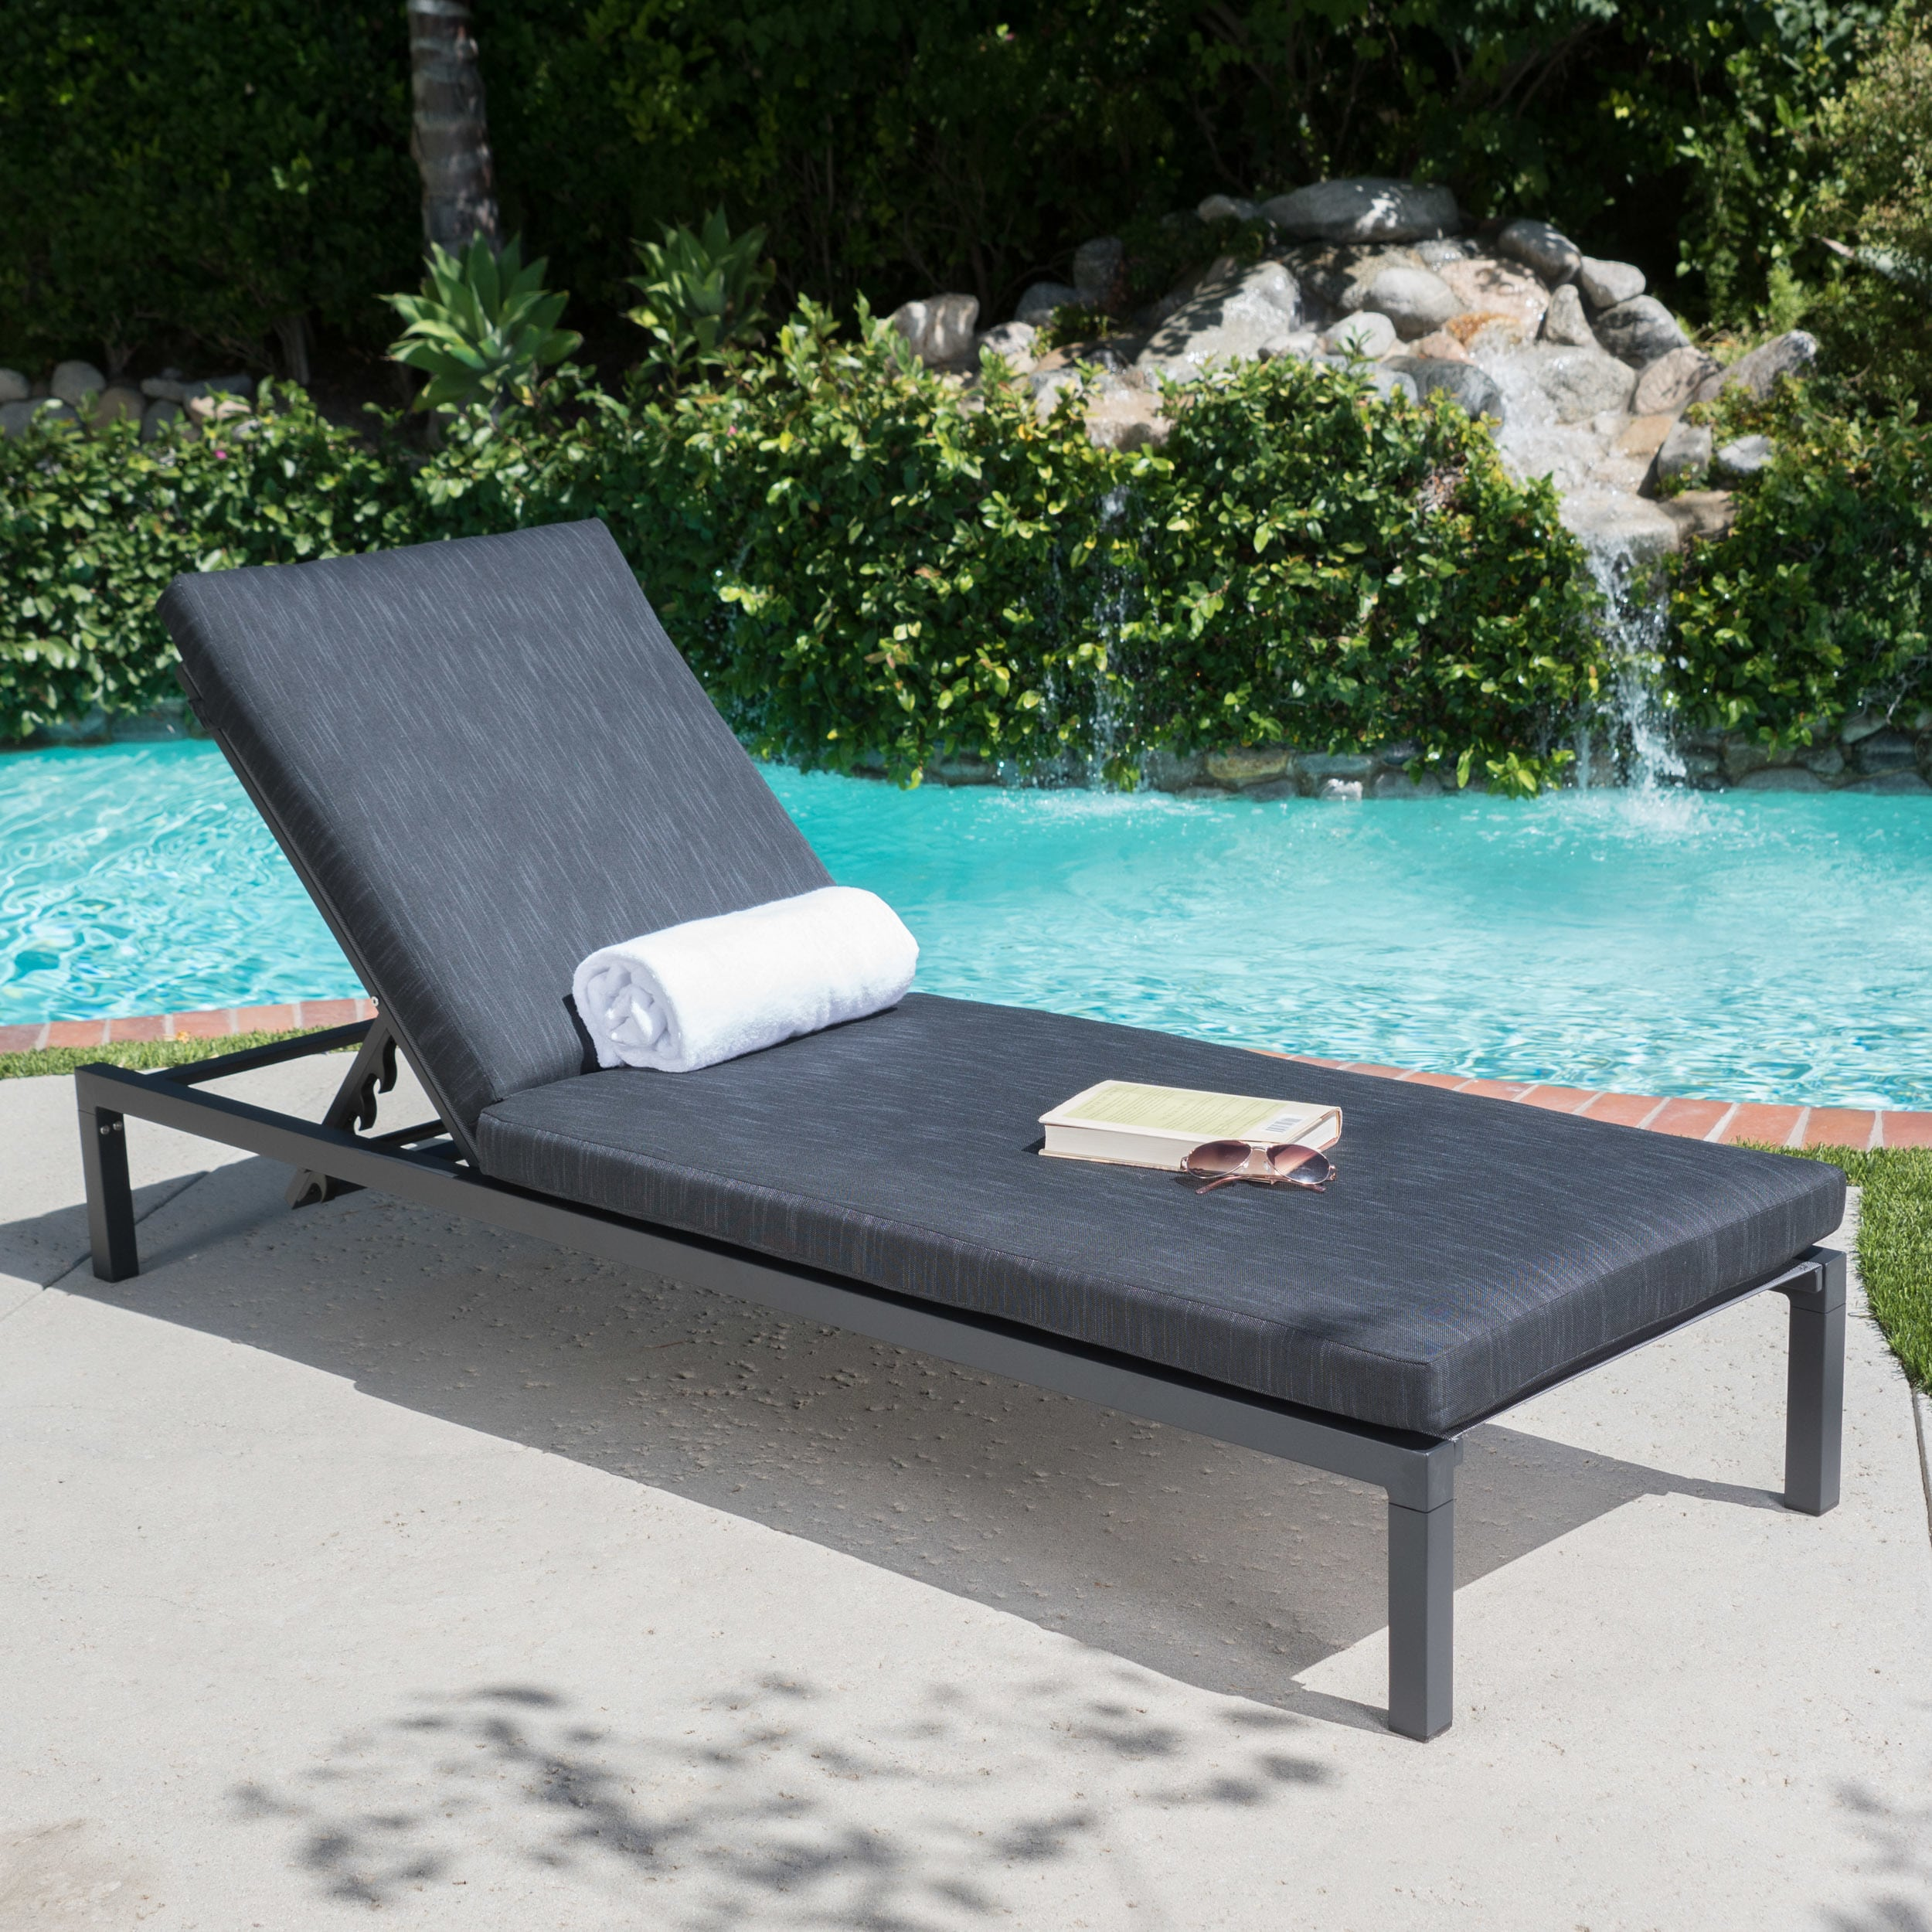 Christopher Knight Home Navan Outdoor Aluminum Chaise Lounge with Cushion by